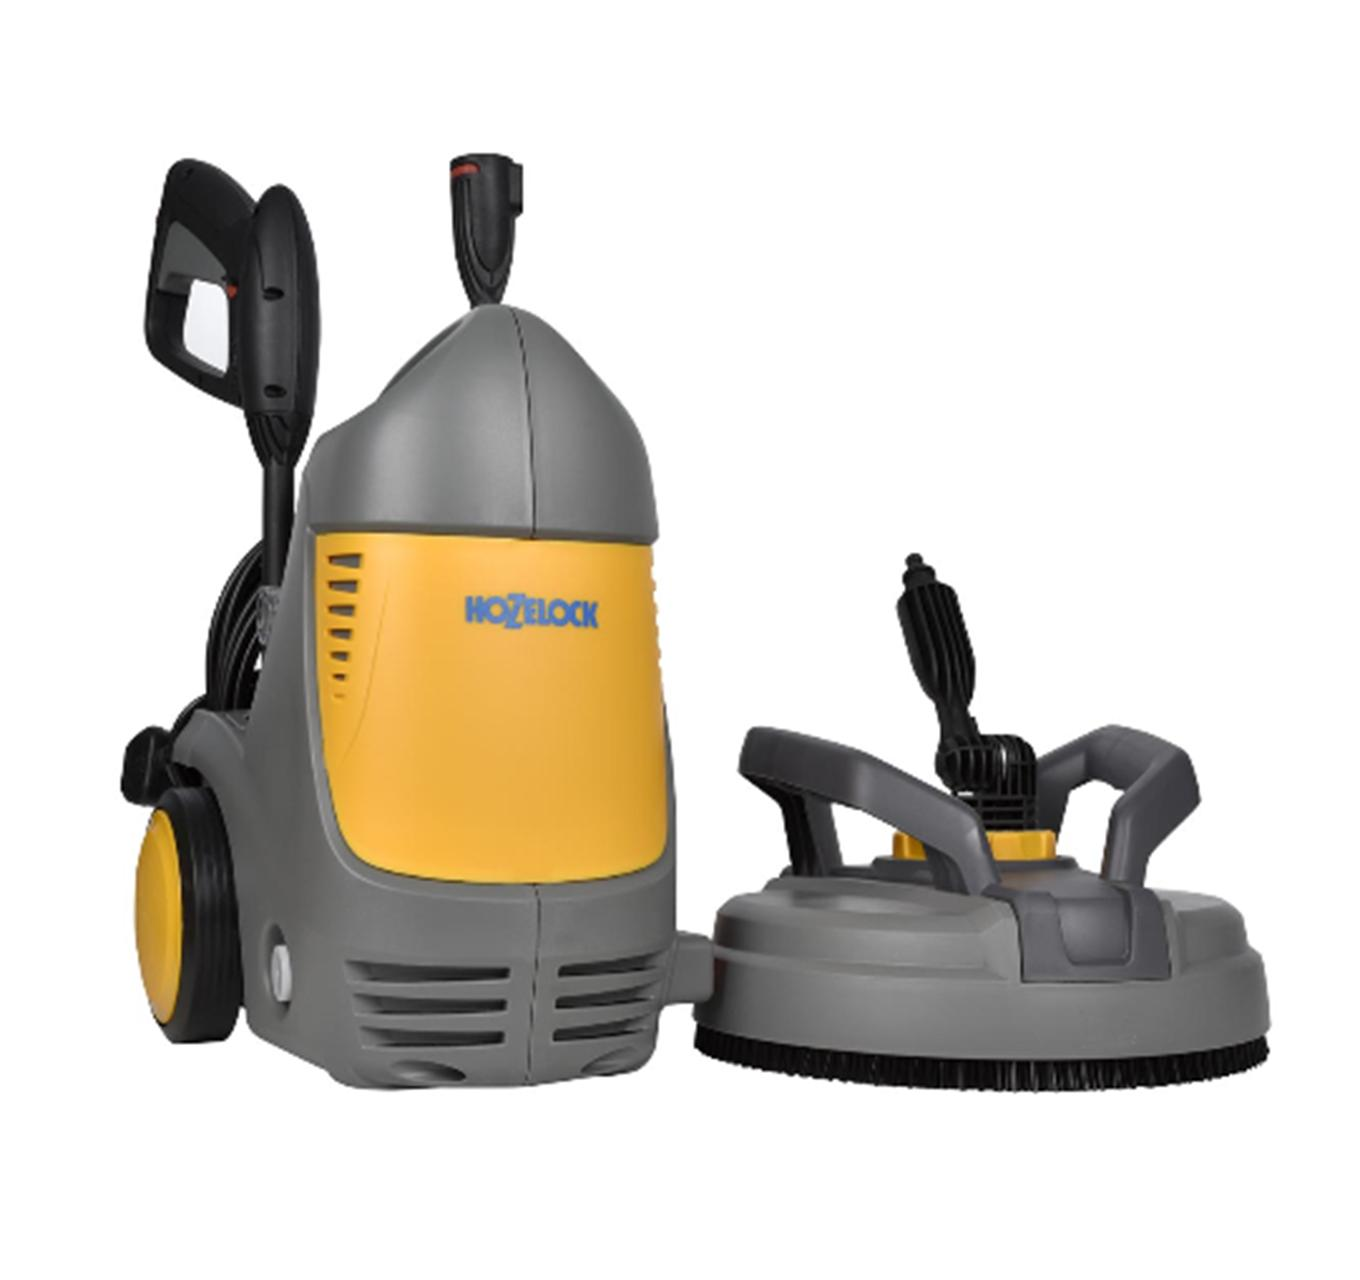 PicoPower Home Pressure Washer